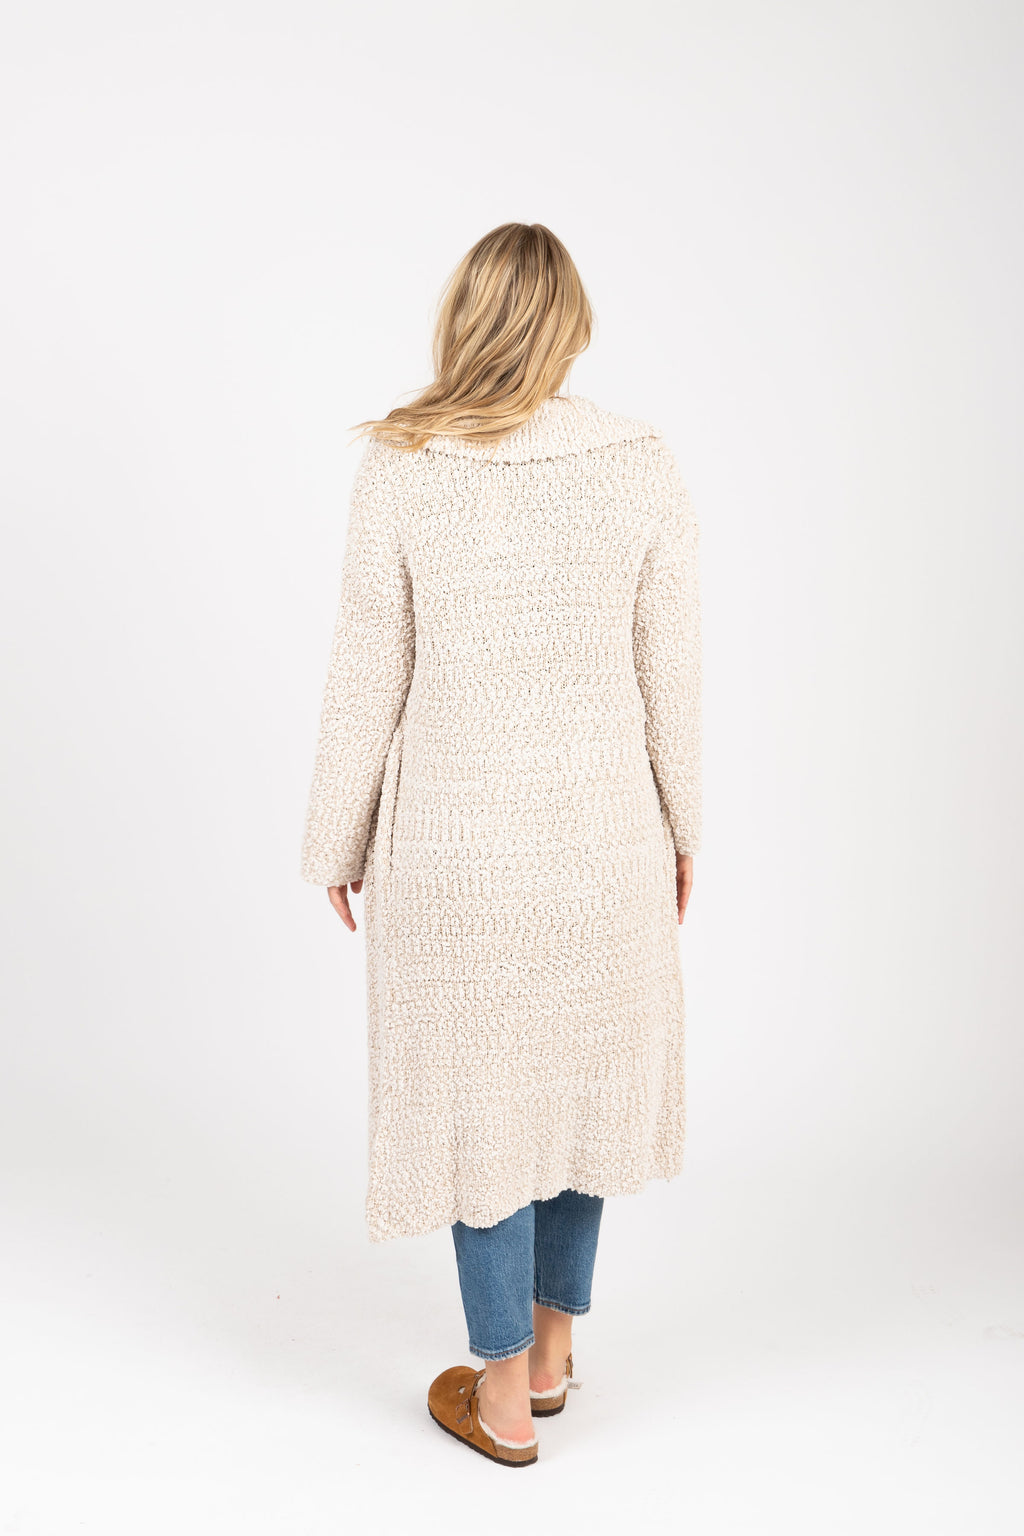 The Essence Lapel Sweater Cardigan in Cream, studio shoot; back view